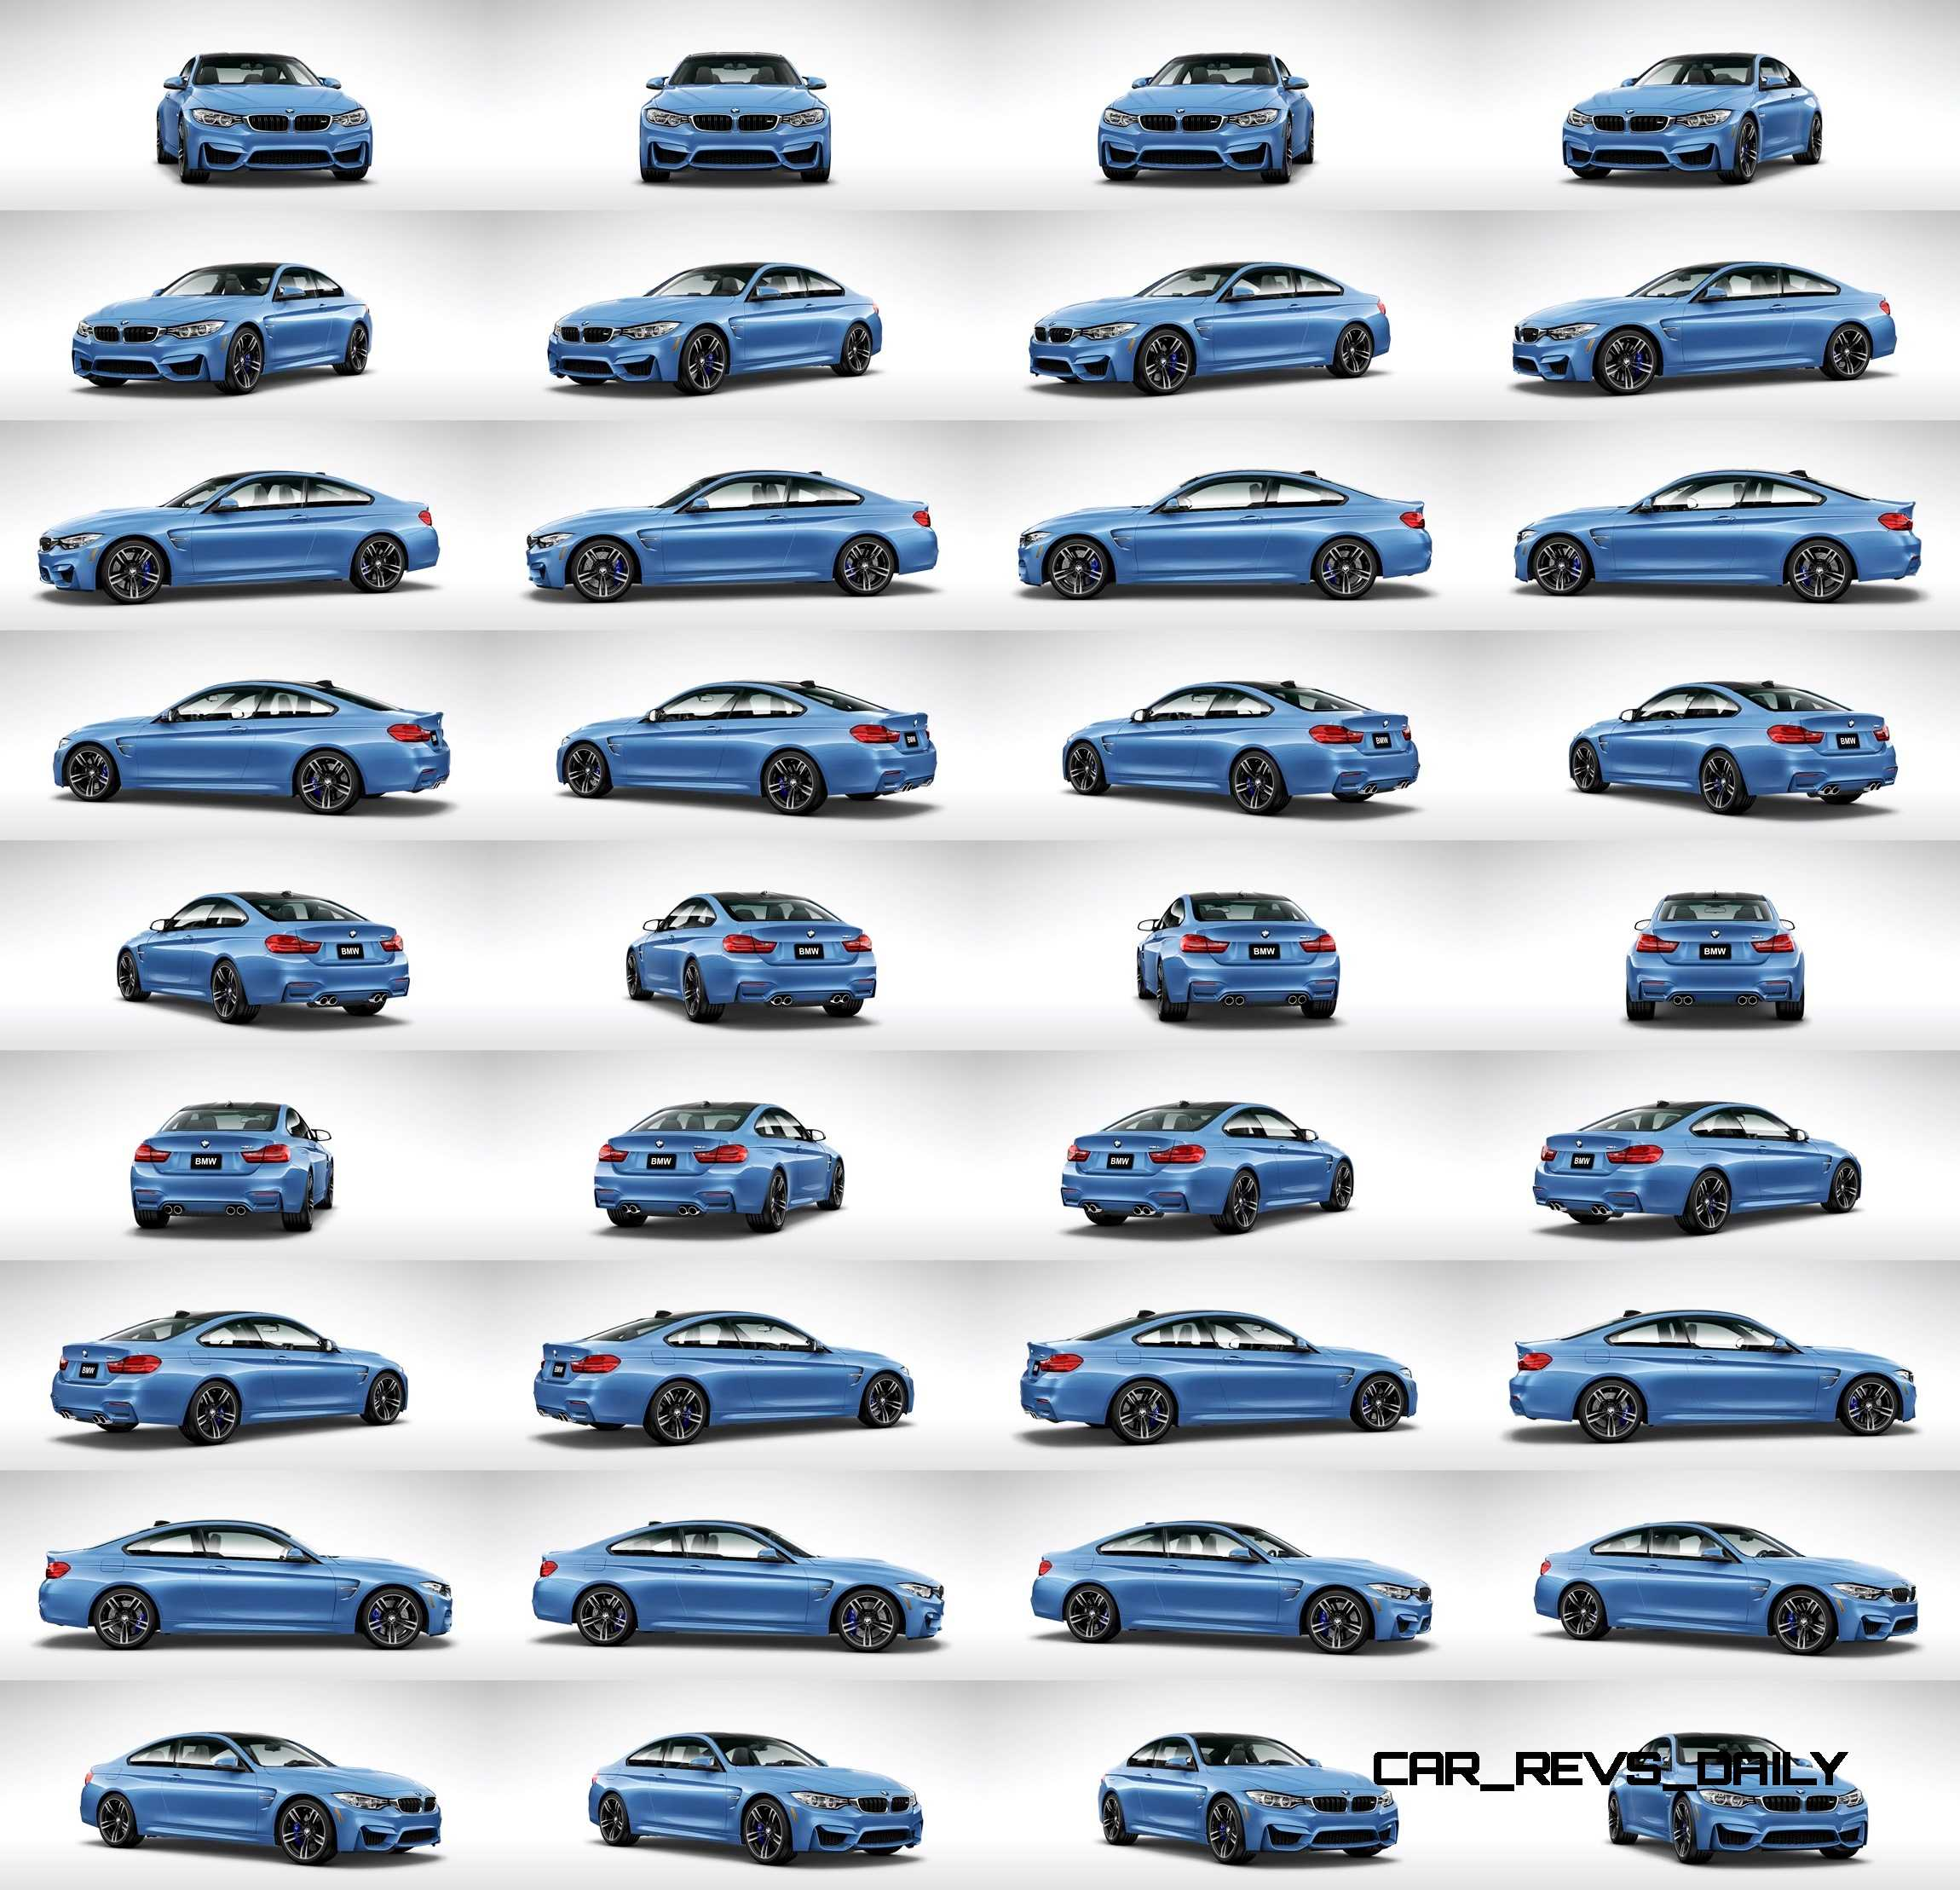 fiat punto street 2016 html with Bmw M4 Convertible Bmw Individual 02 on Bmw M4 Convertible Bmw Individual 02 furthermore Fiat Racing Car also Fiat Ducato 2016 besides Ford Corcel Gt Tuning additionally Wallpaper 14.